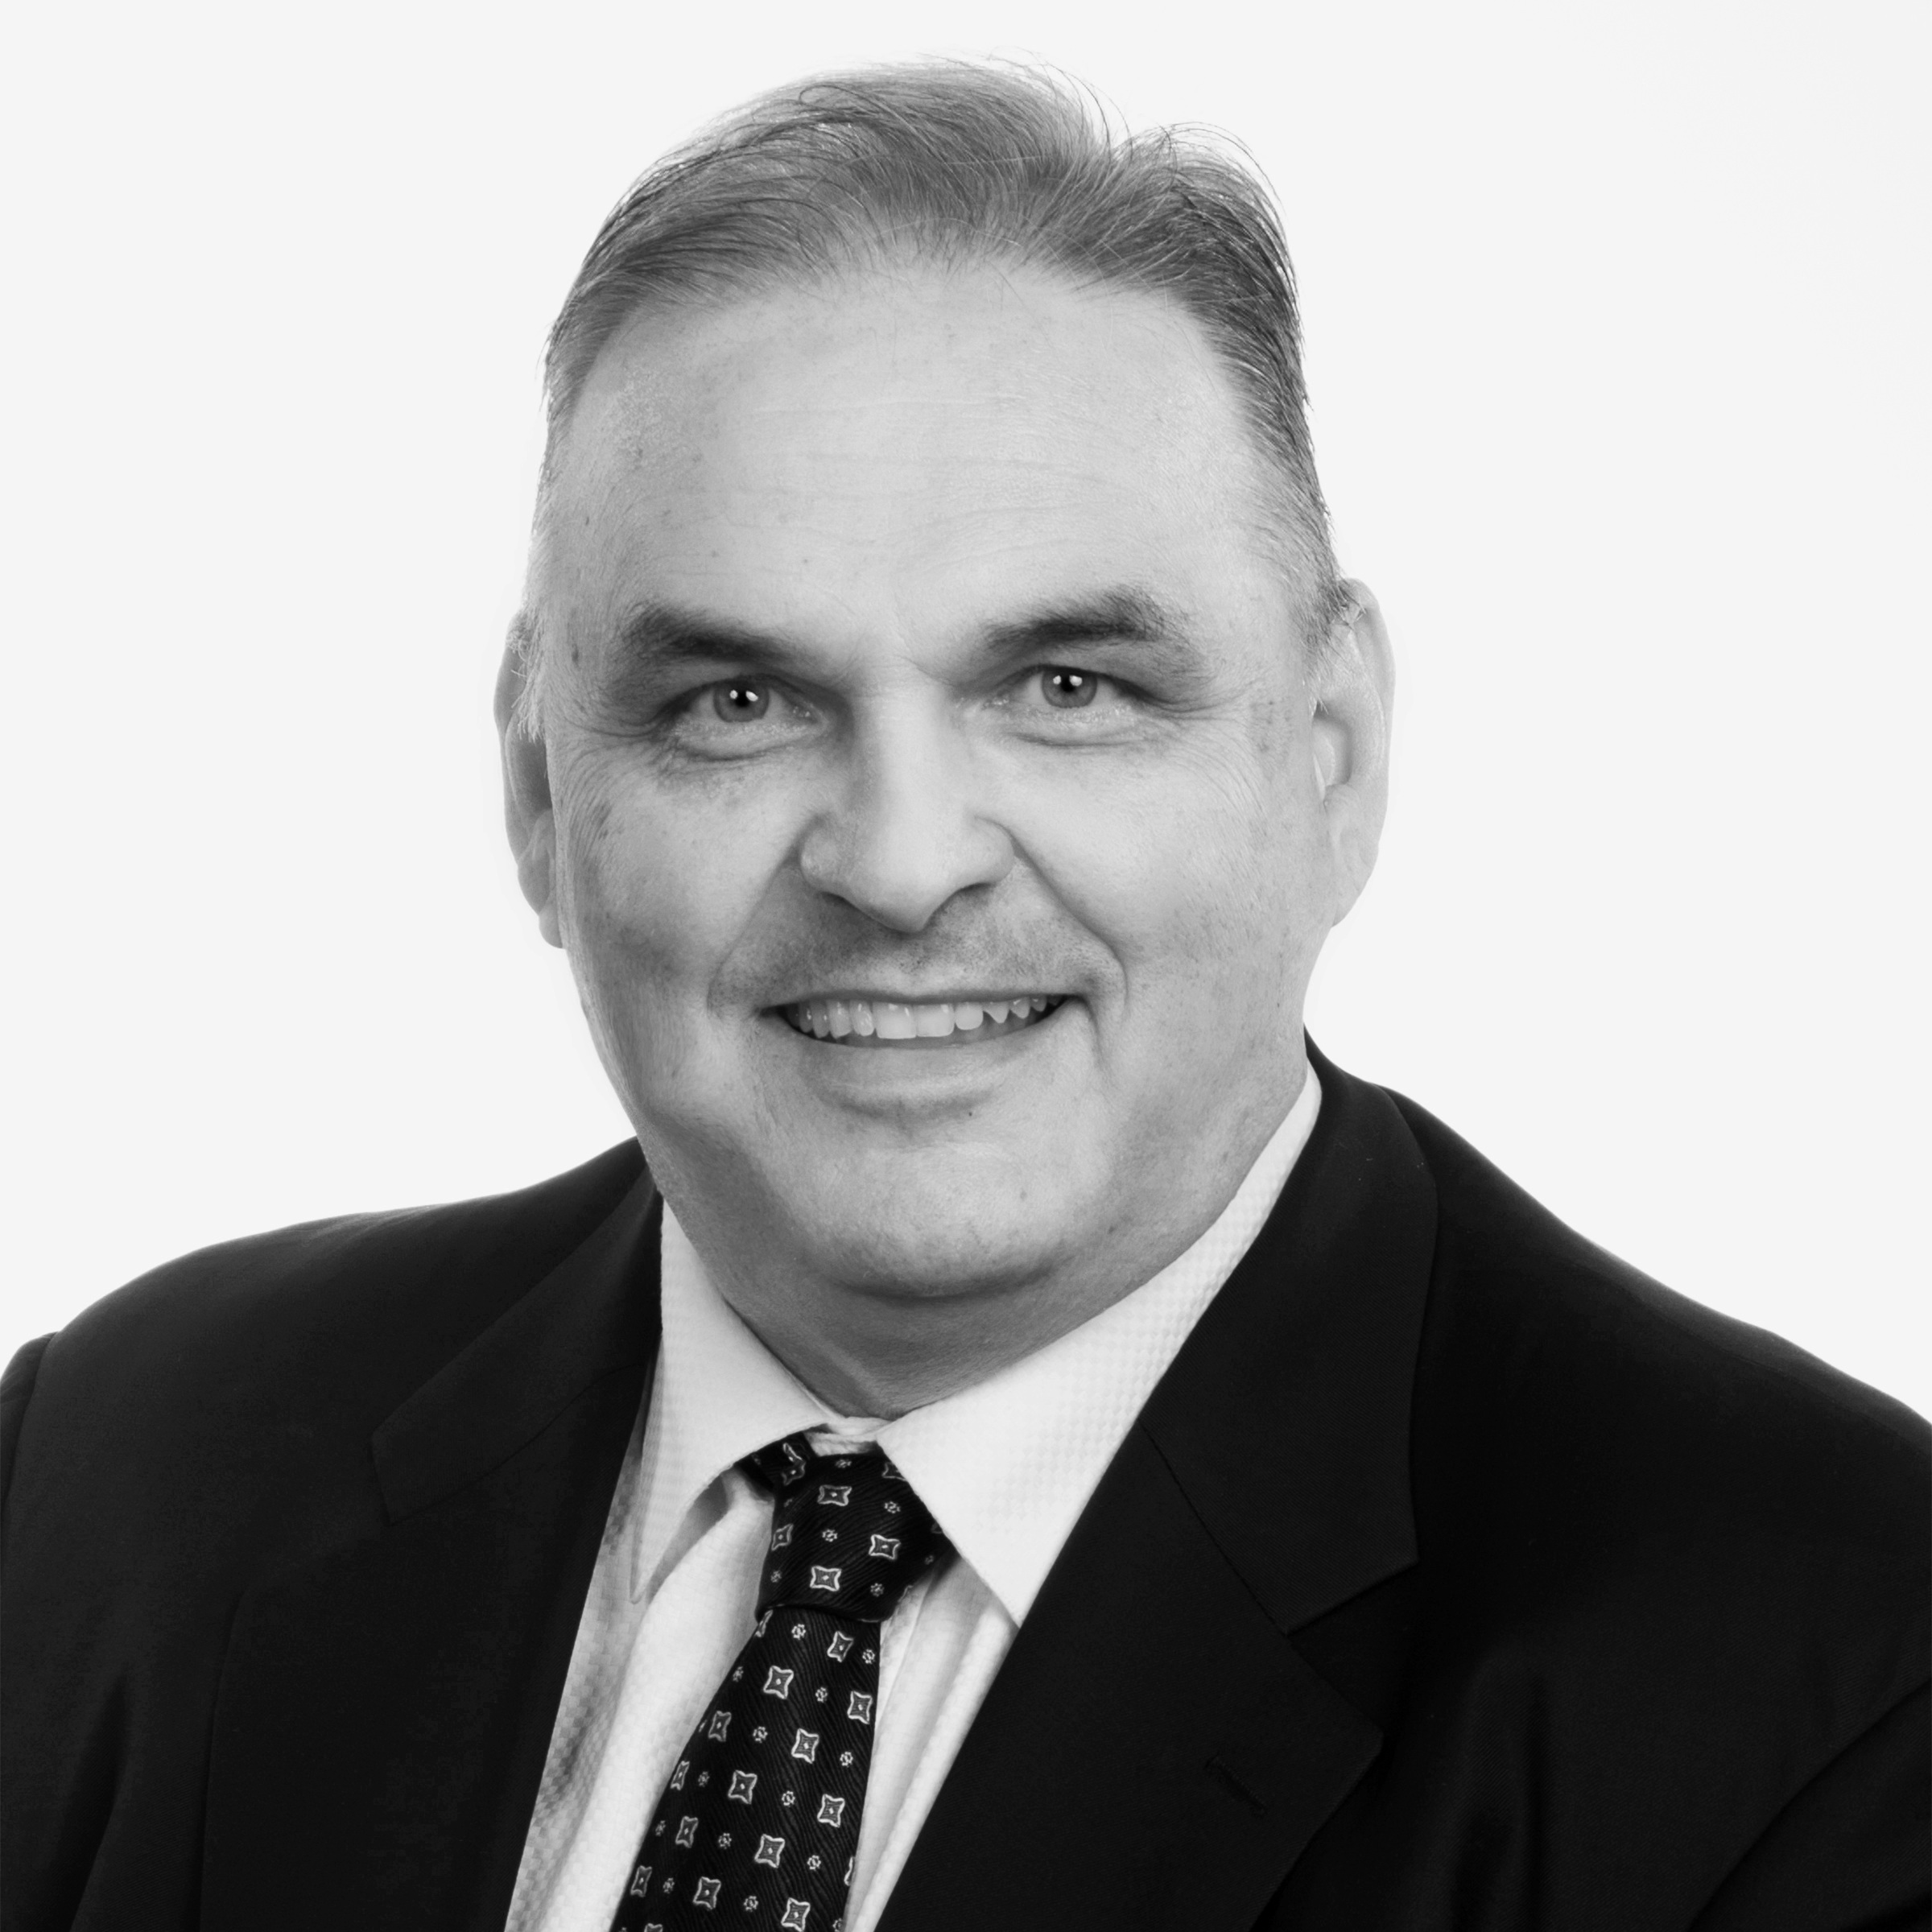 Tom CoxCOO - BACKGROUND:COO AT TEKNAVOMANAGING DIRECTOR AT CREDIT SUISSECO-HEAD OF FIXED INCOME TECH AT DONALDSON, LUFKIN & JENRETTE